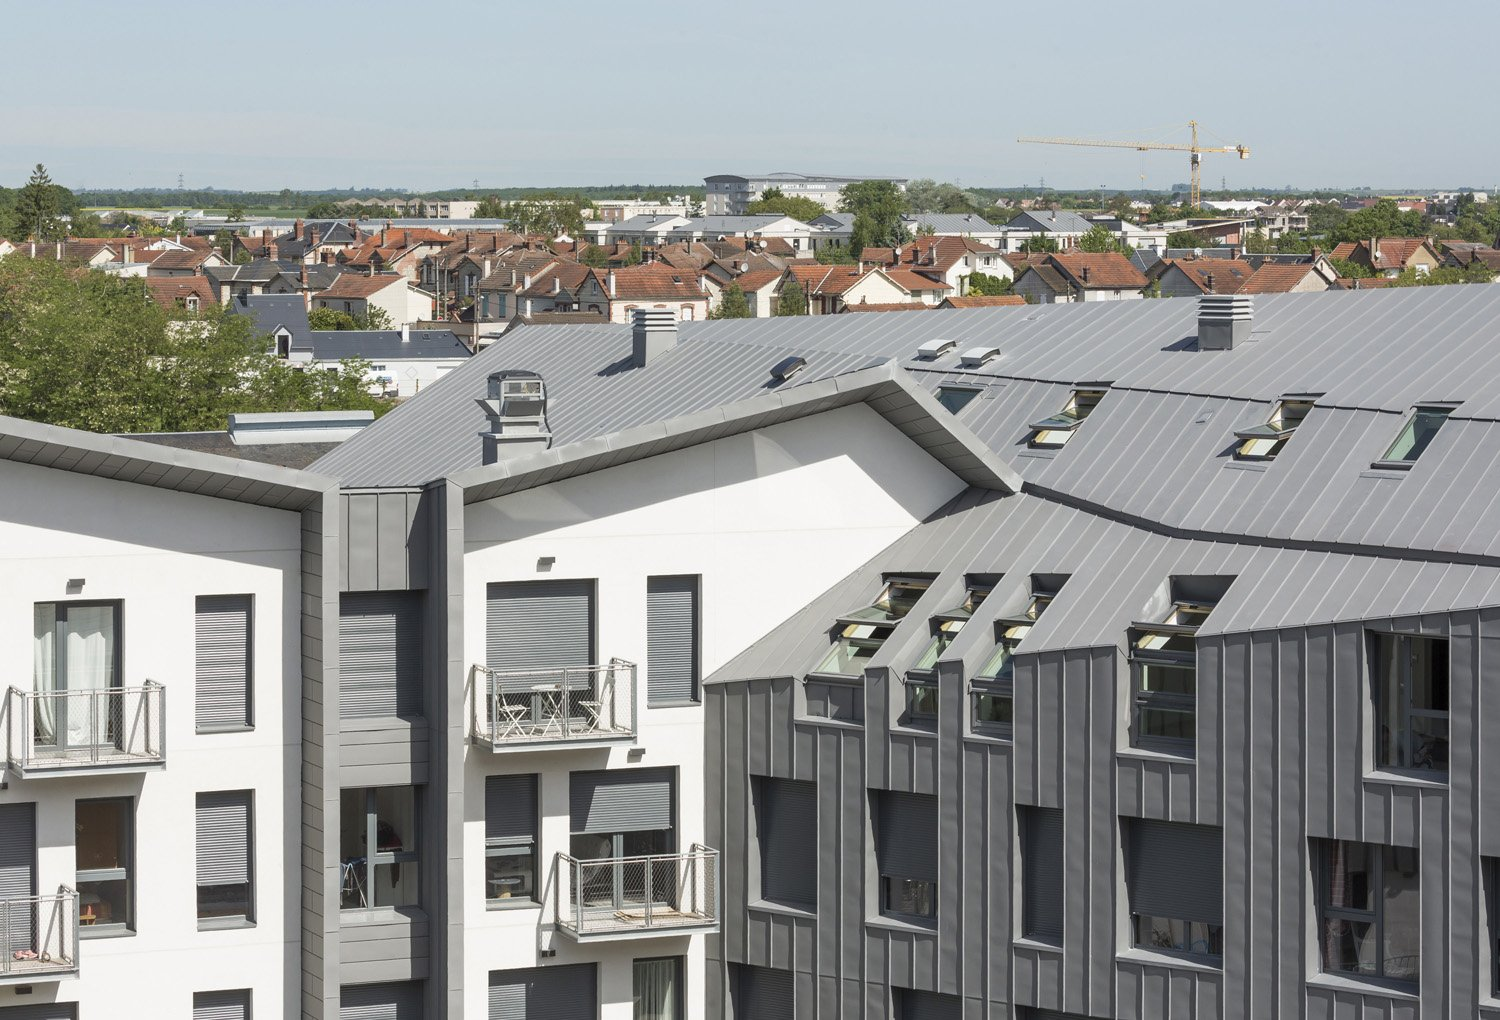 """The flats are in four adjacent """"town houses"""" with direct access to a shared garden © Luc Boegly"""